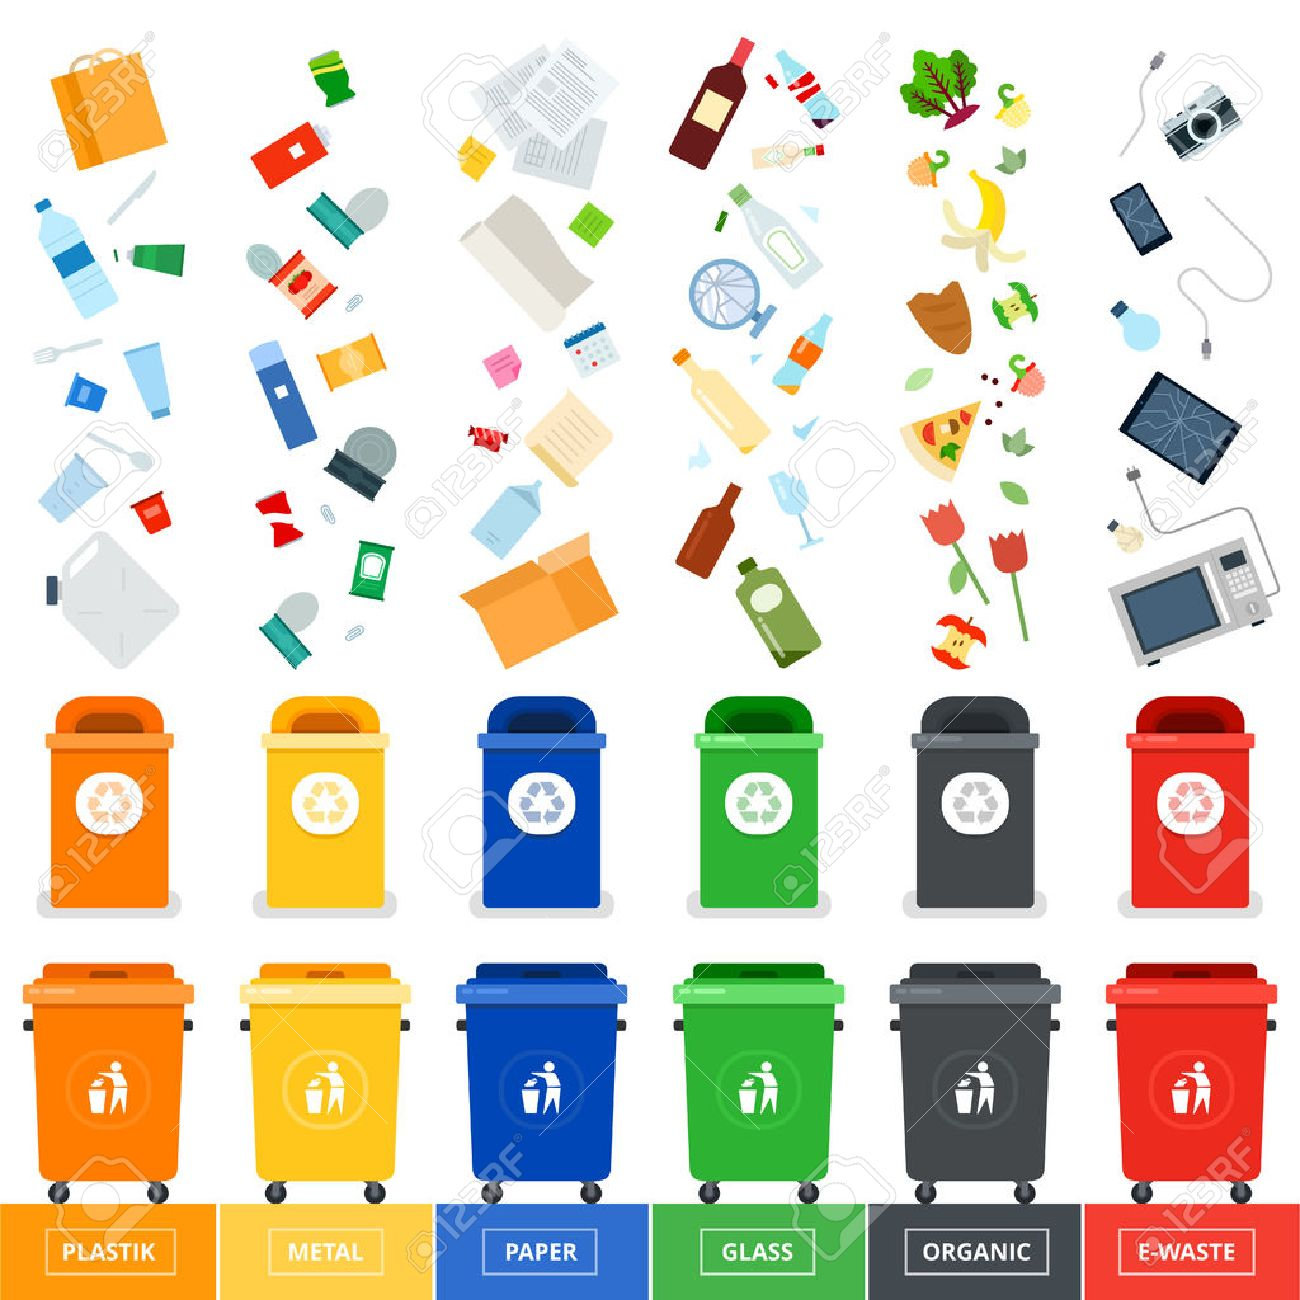 Garbage cans flat illustrations. Many garbage cans with sorted garbage. Sorting garbage. Ecology and recycle concept. Trash cans isolated on white background - 56713544